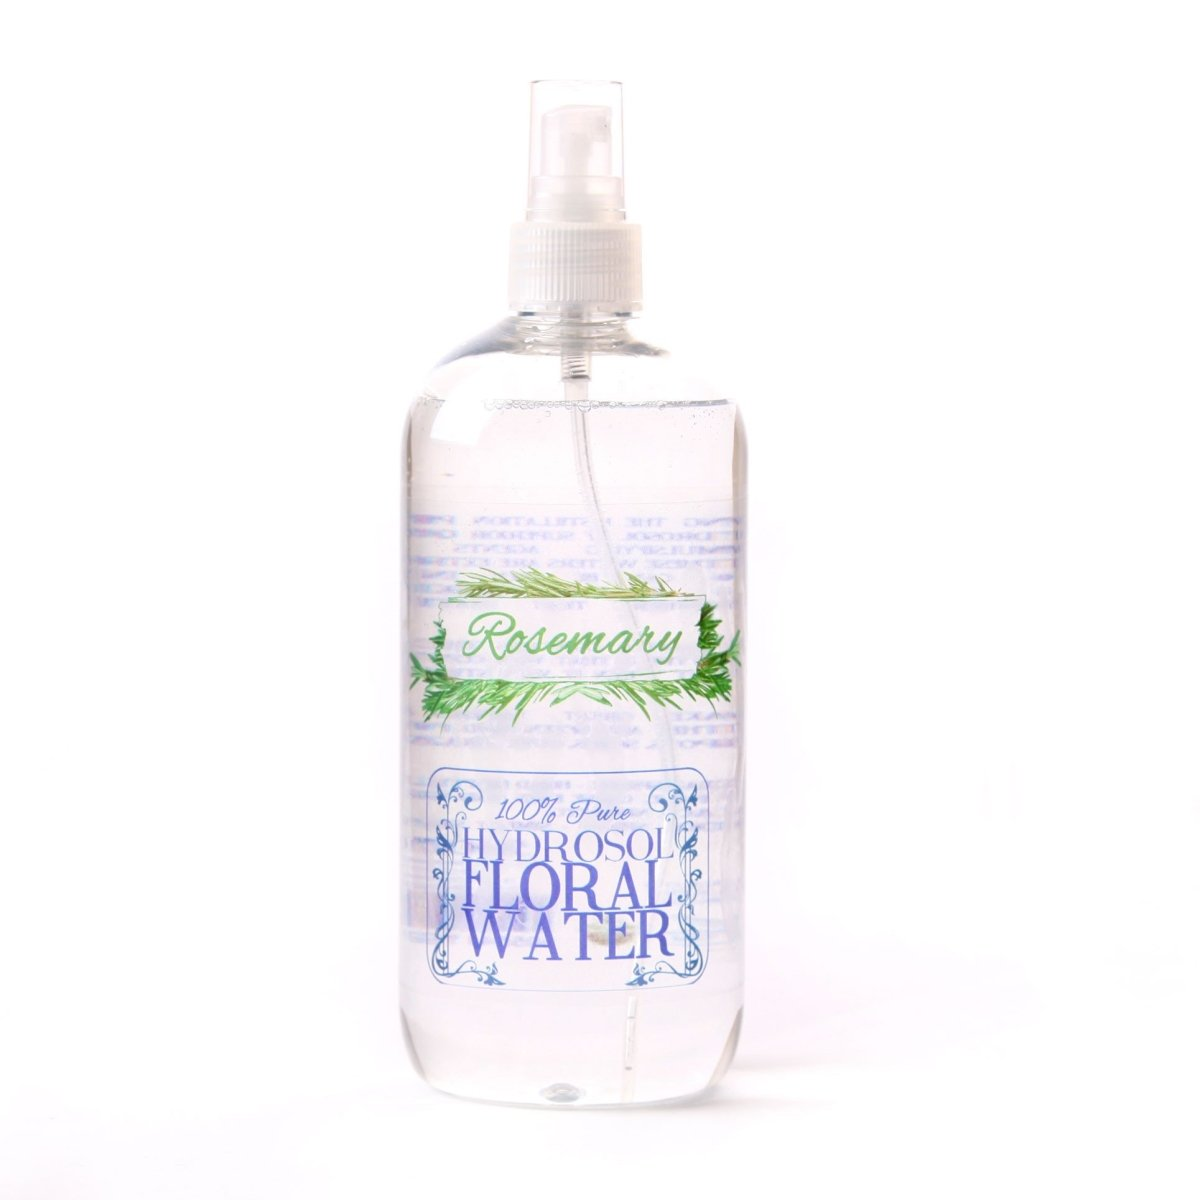 Rosemary Hydrosol Floral Water - Mystic Moments UK